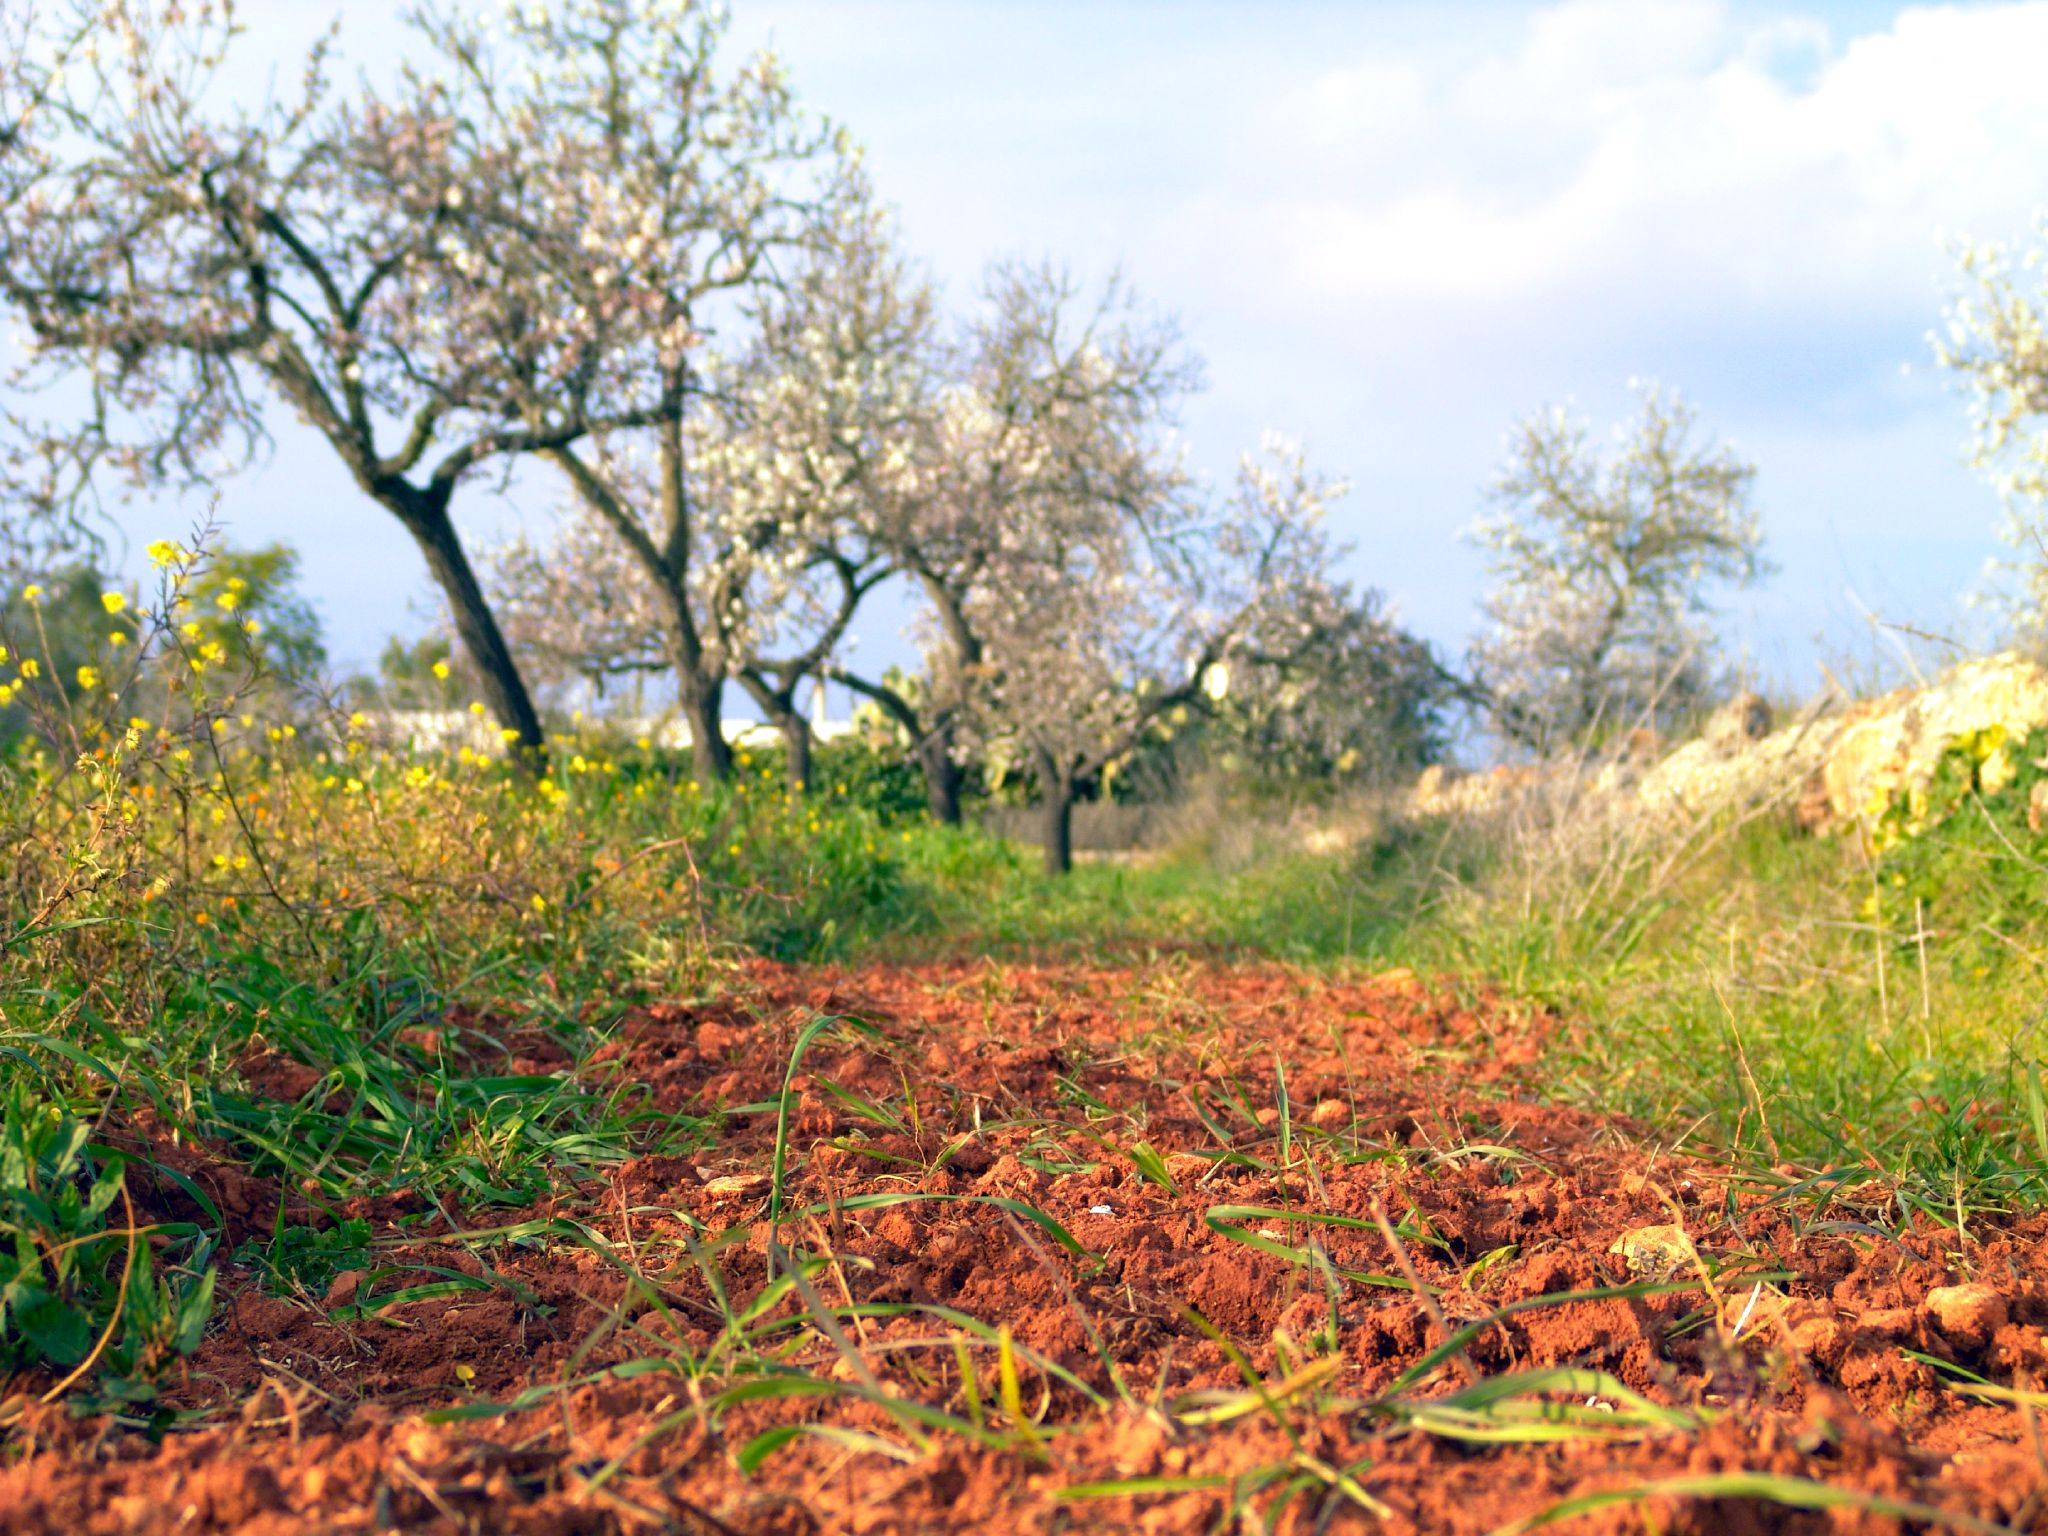 Ibiza: Almond trees blooming on red soil.